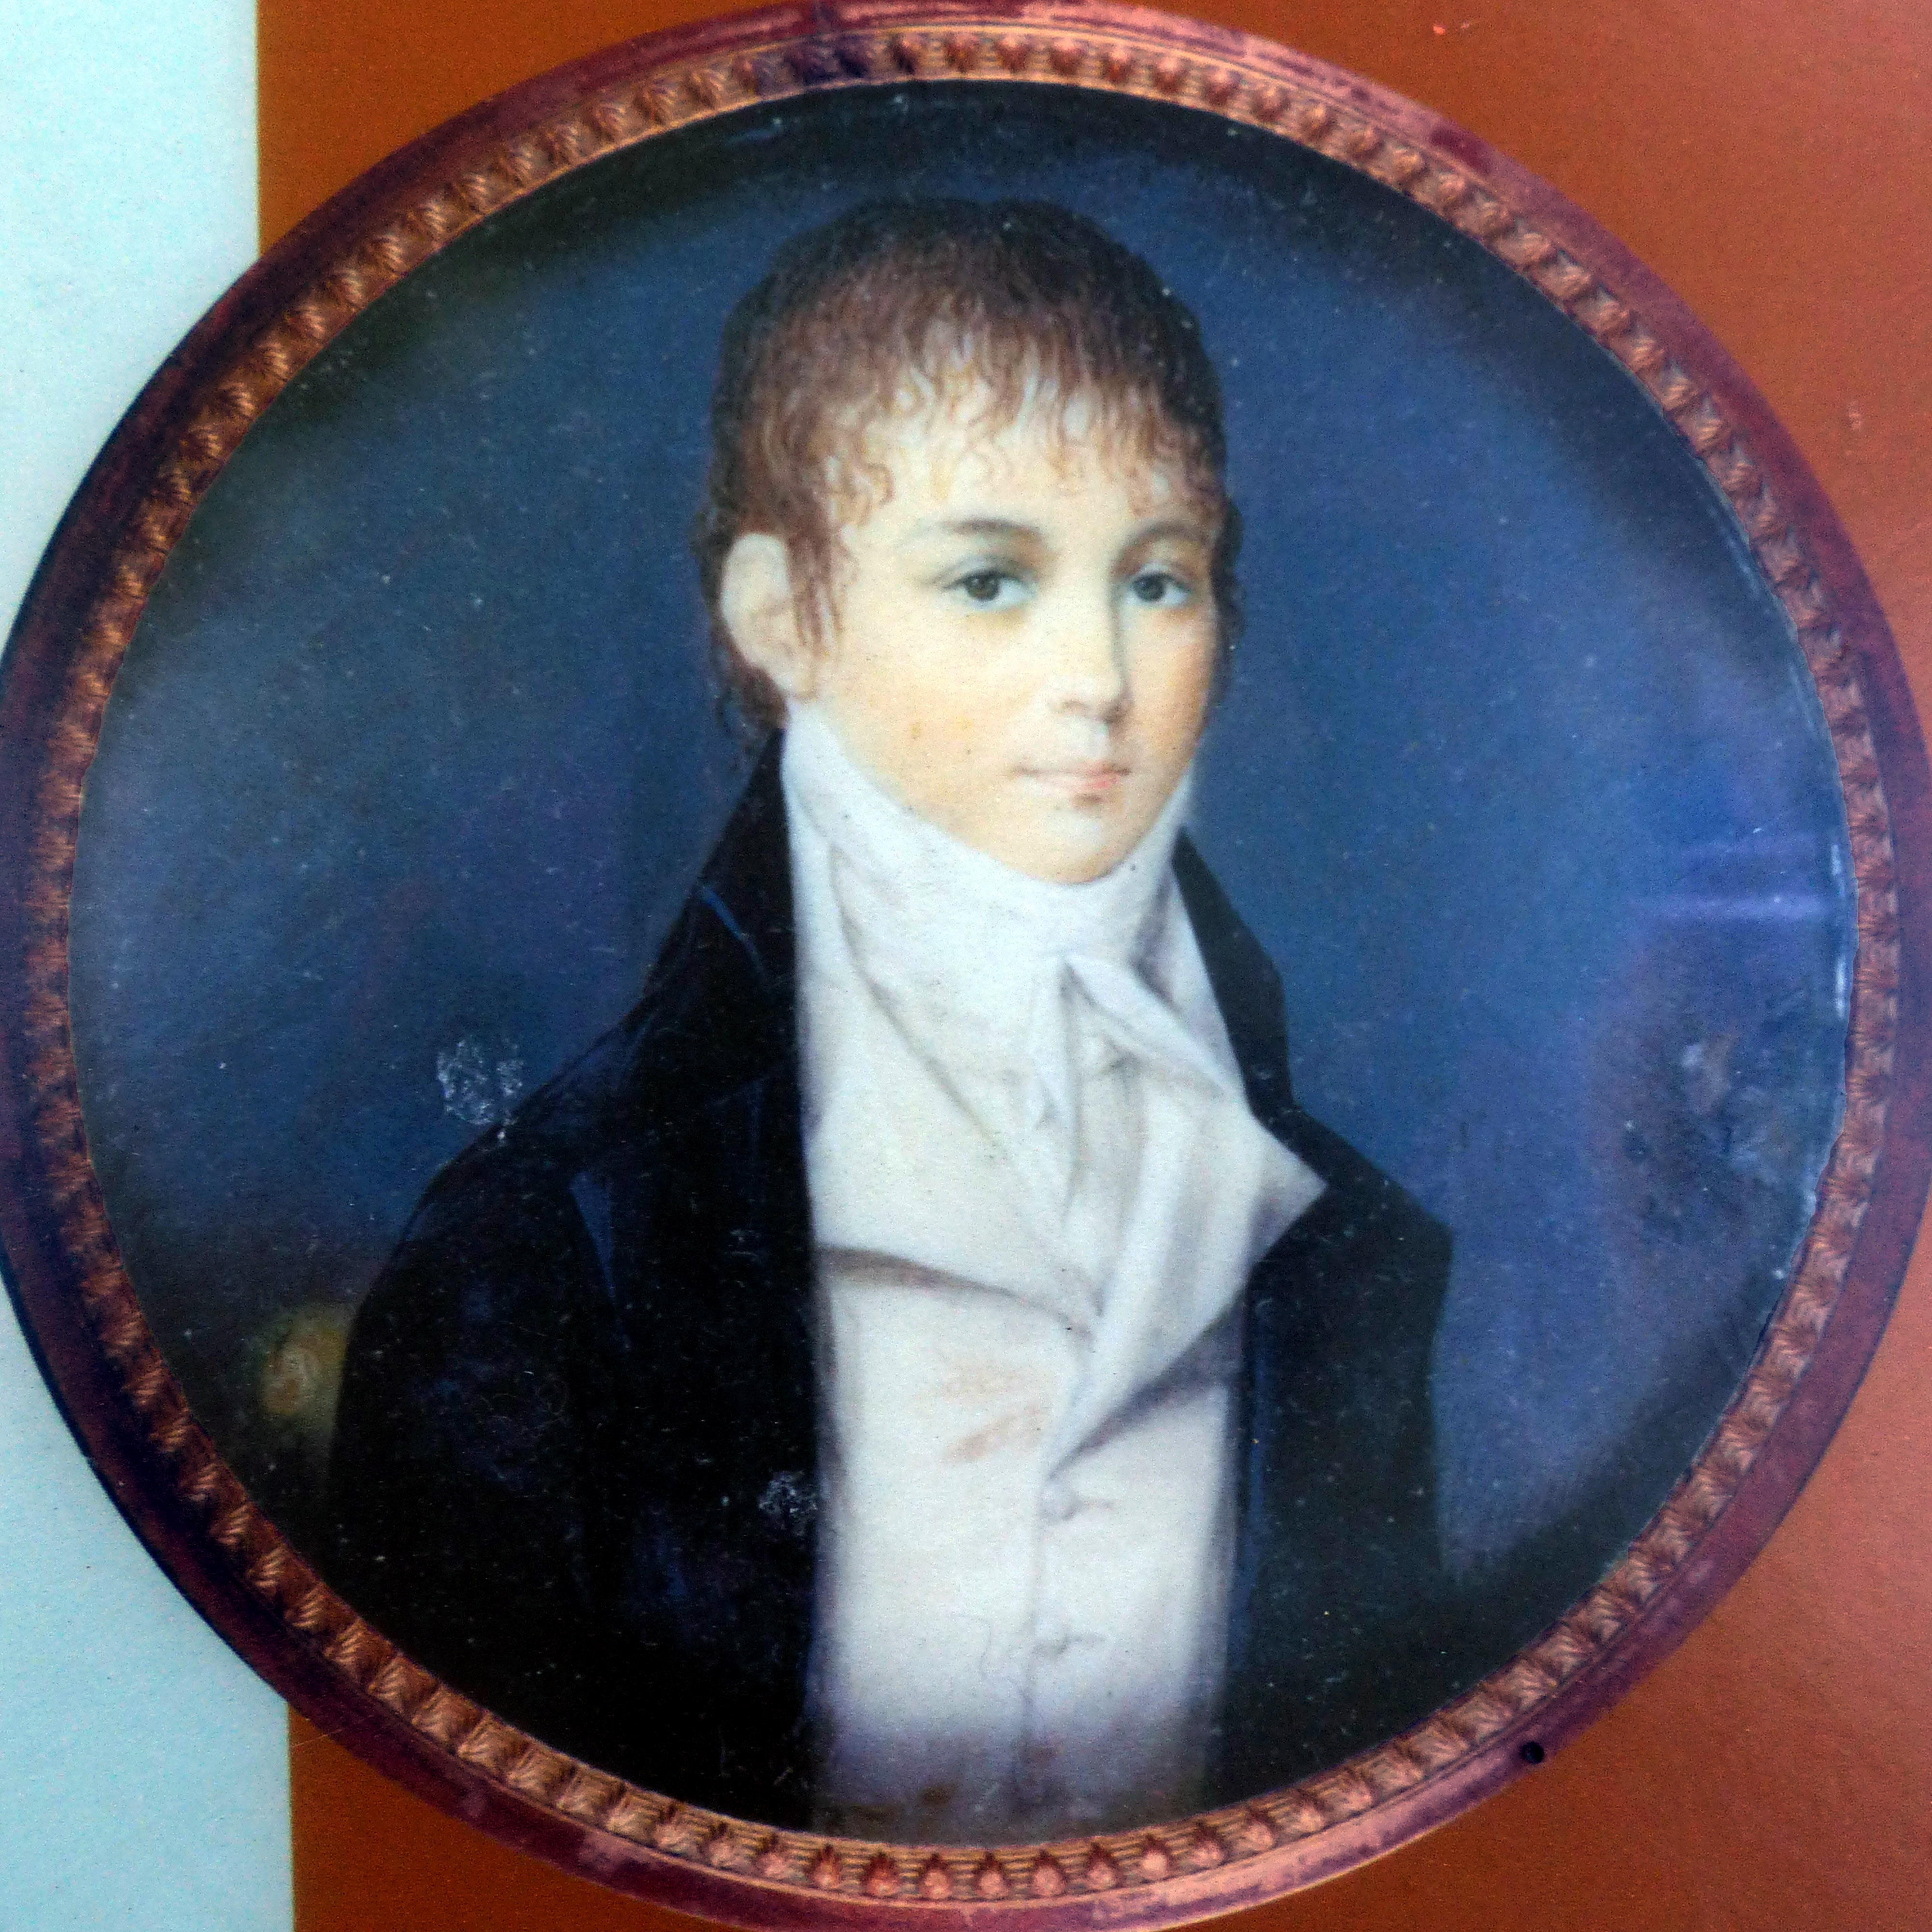 Key as a youth